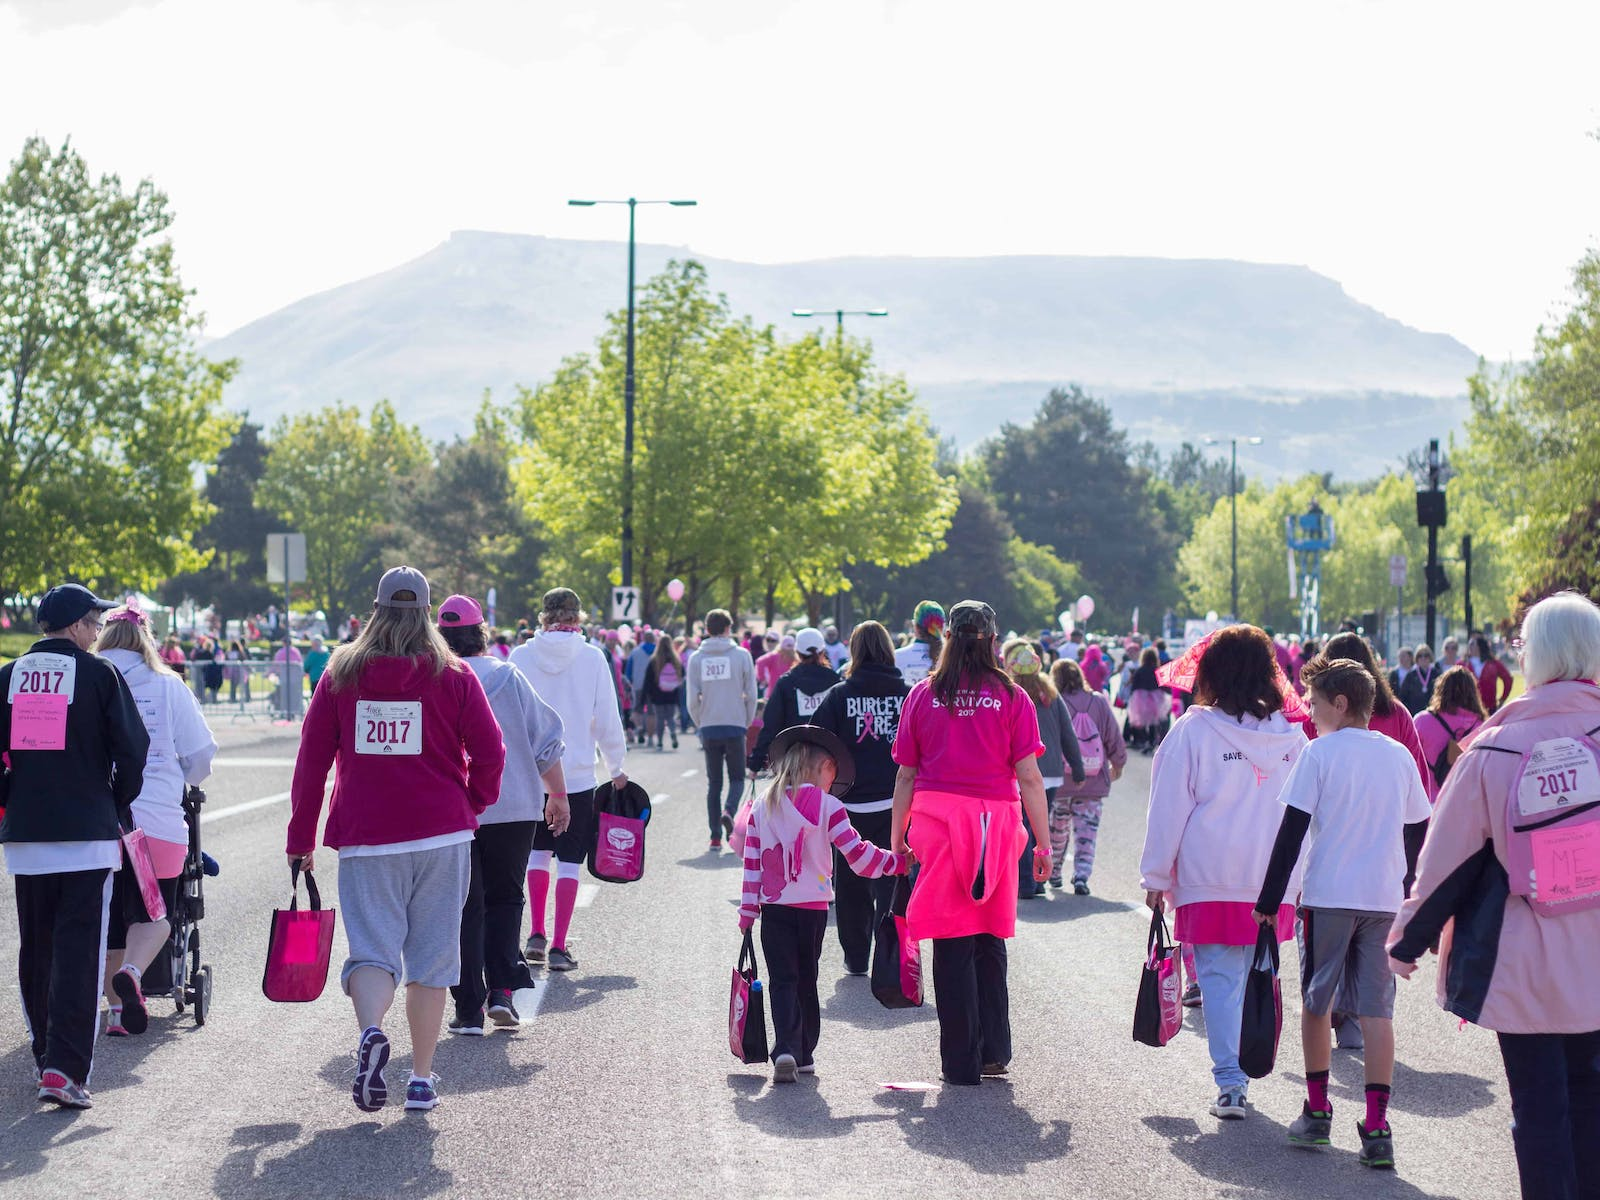 a large group of people doing a charity walk for breast cancer